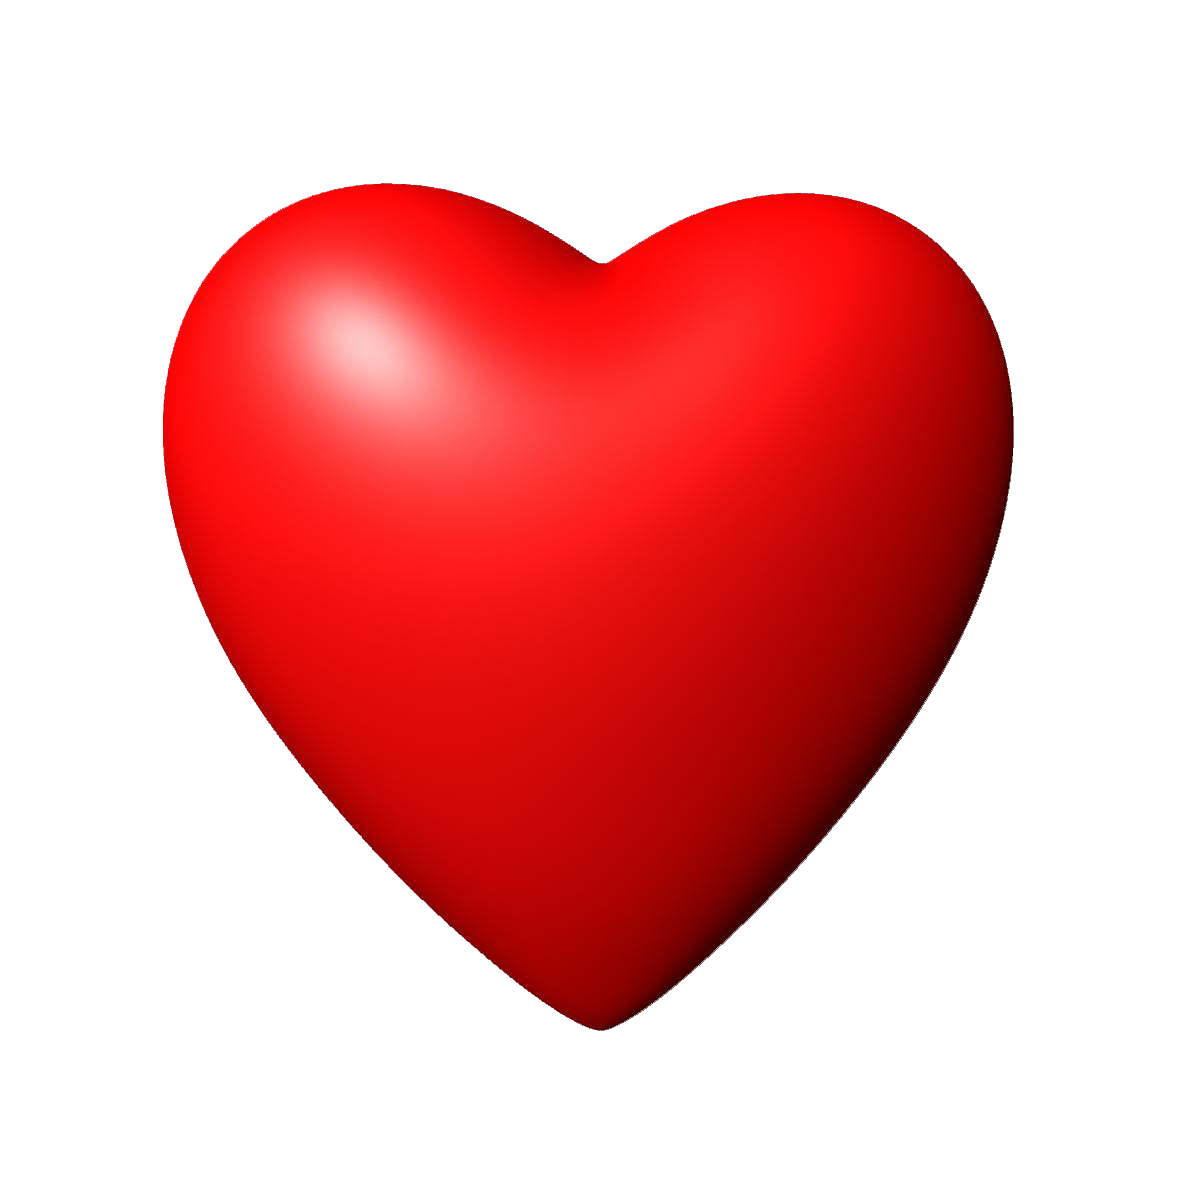 d red image. 3d heart png clip art freeuse